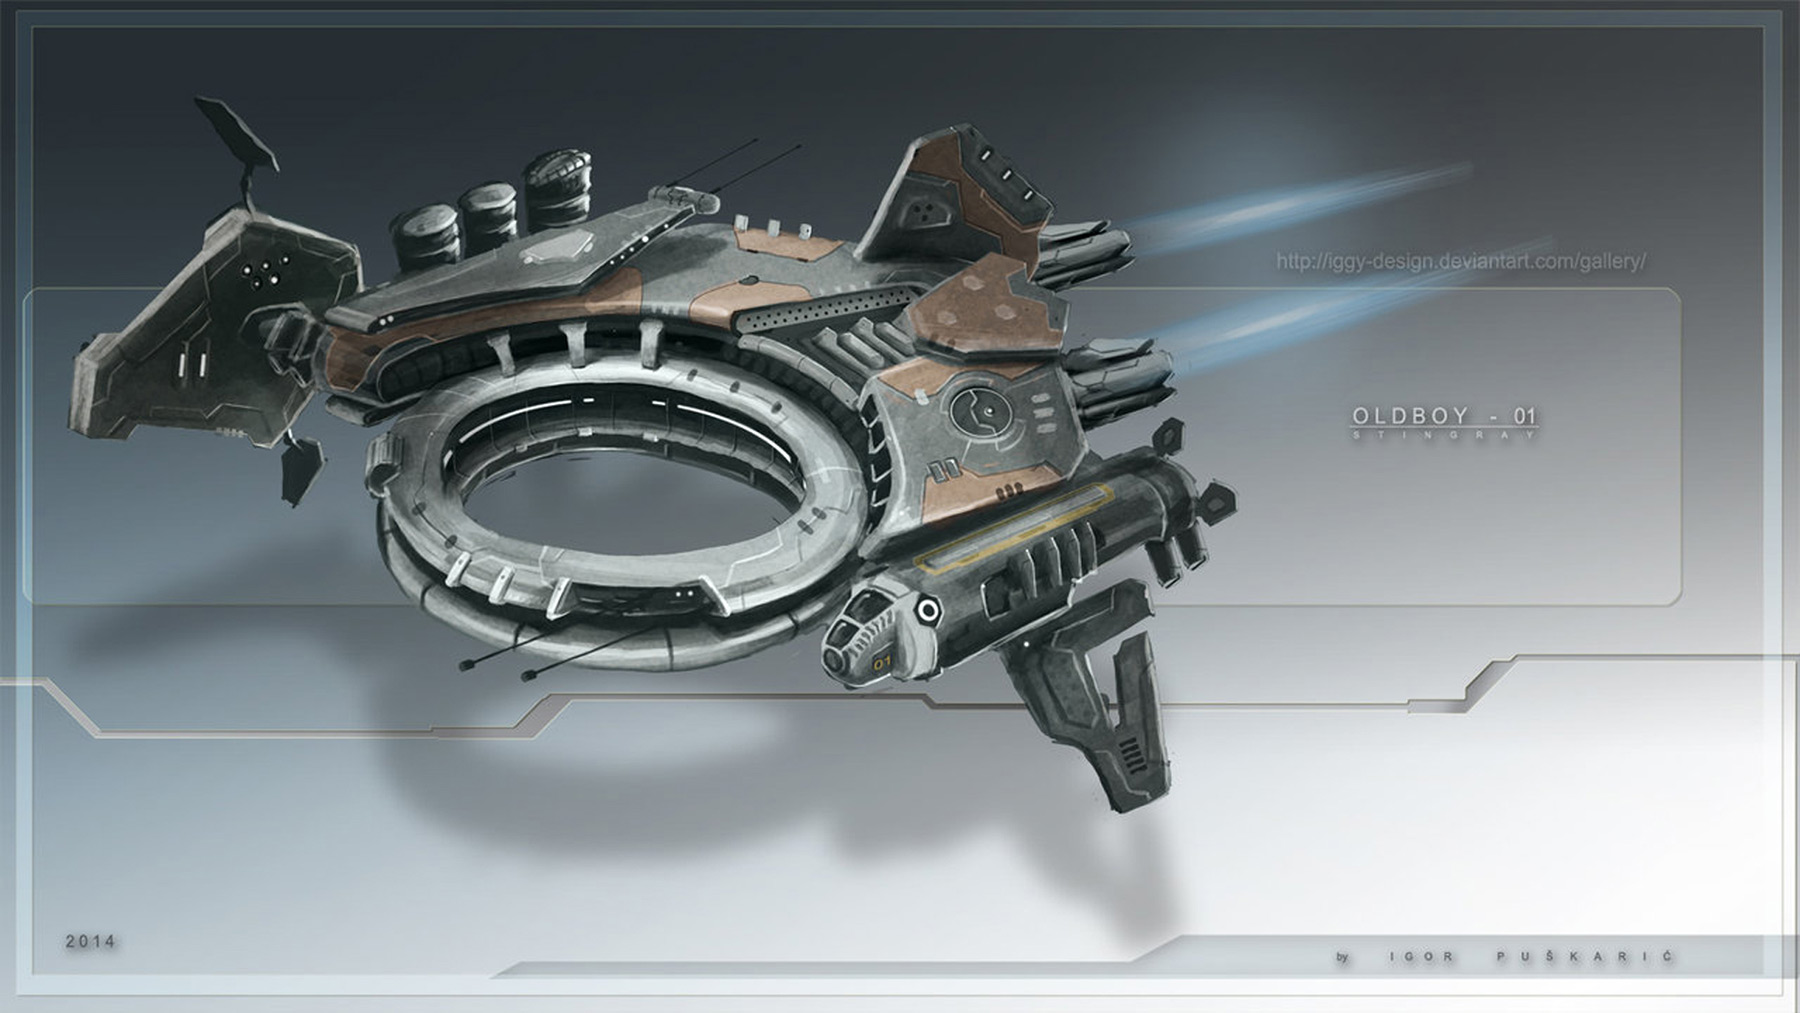 Concept ships spaceship models by igor puskaric for Spaceship design